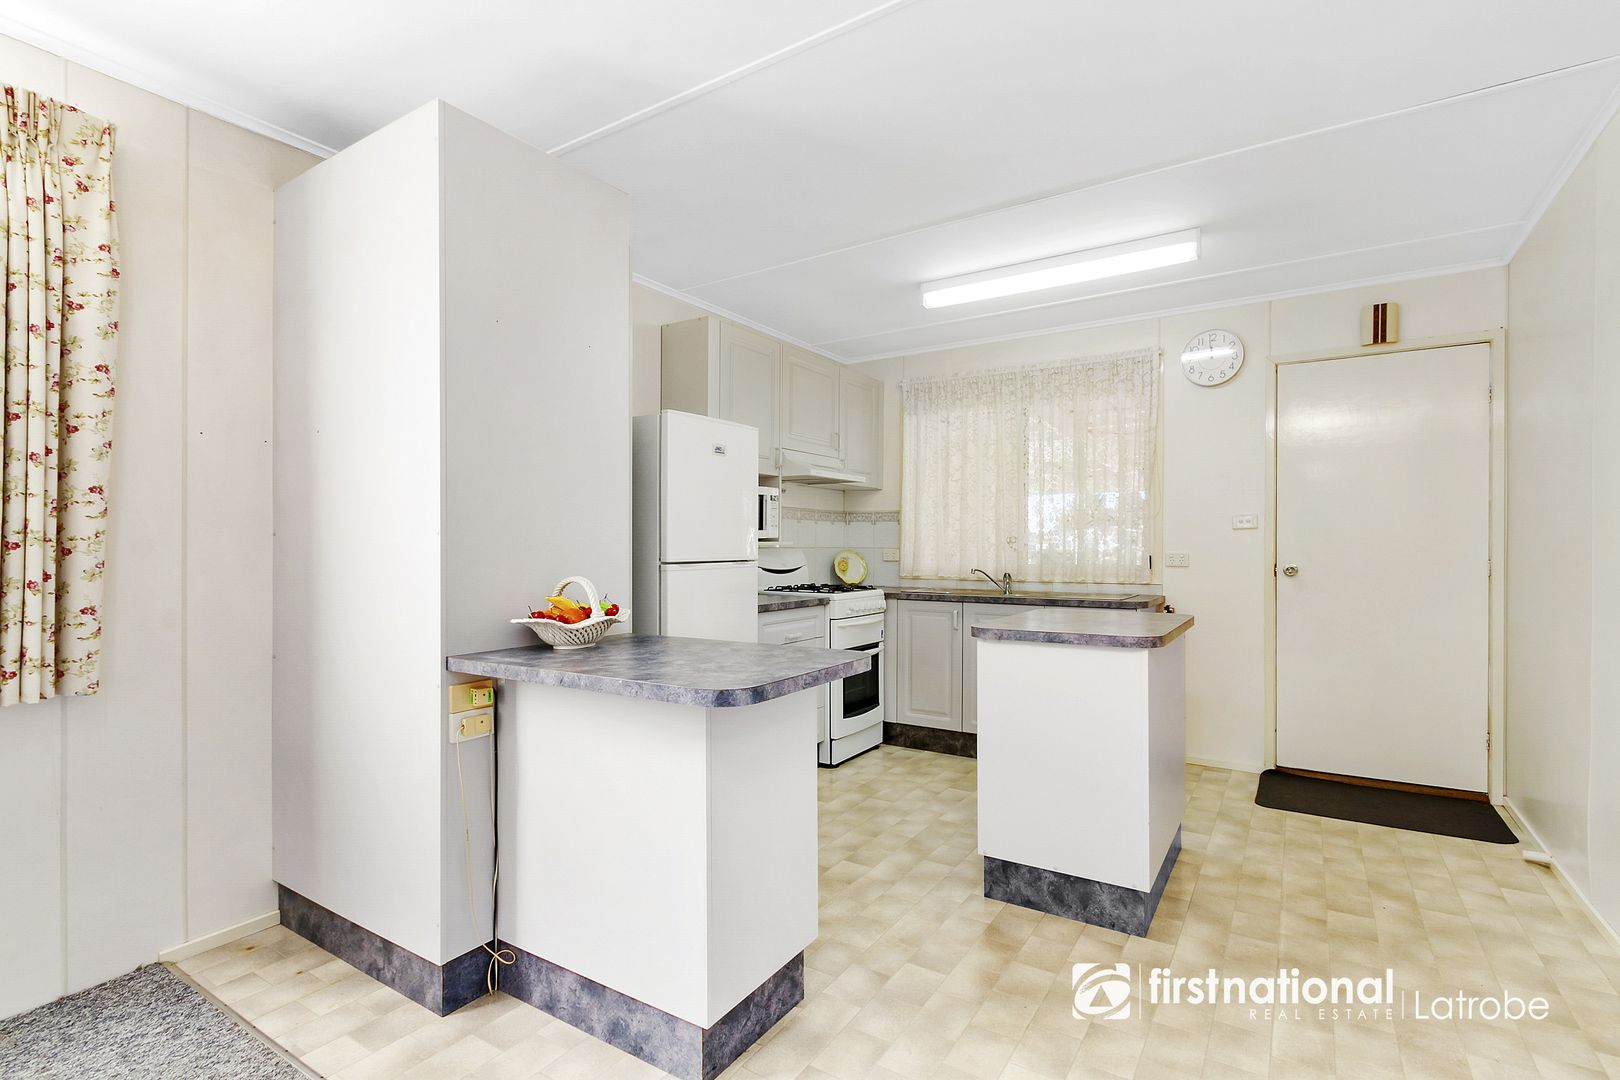 Site 93 Bond Street, Mayfair Gardens - 26-28 Park Lane, Traralgon VIC 3844, Image 2